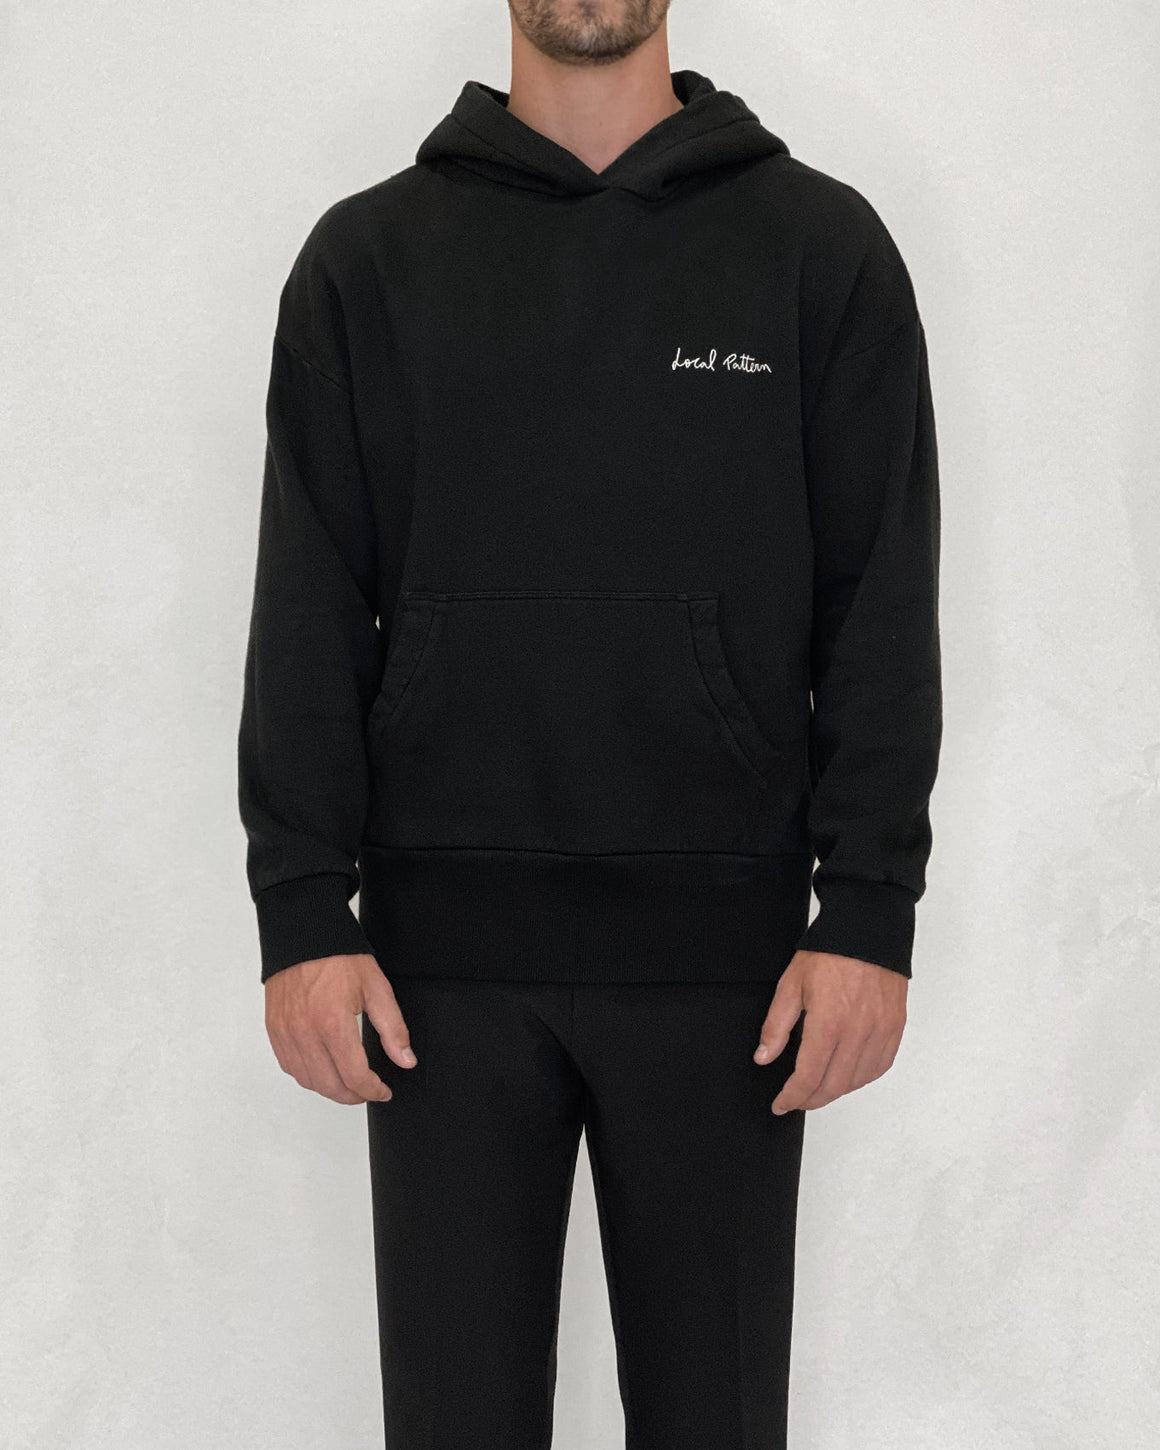 Marc Local Pattern Embroidered Hoodie Black - Local Pattern